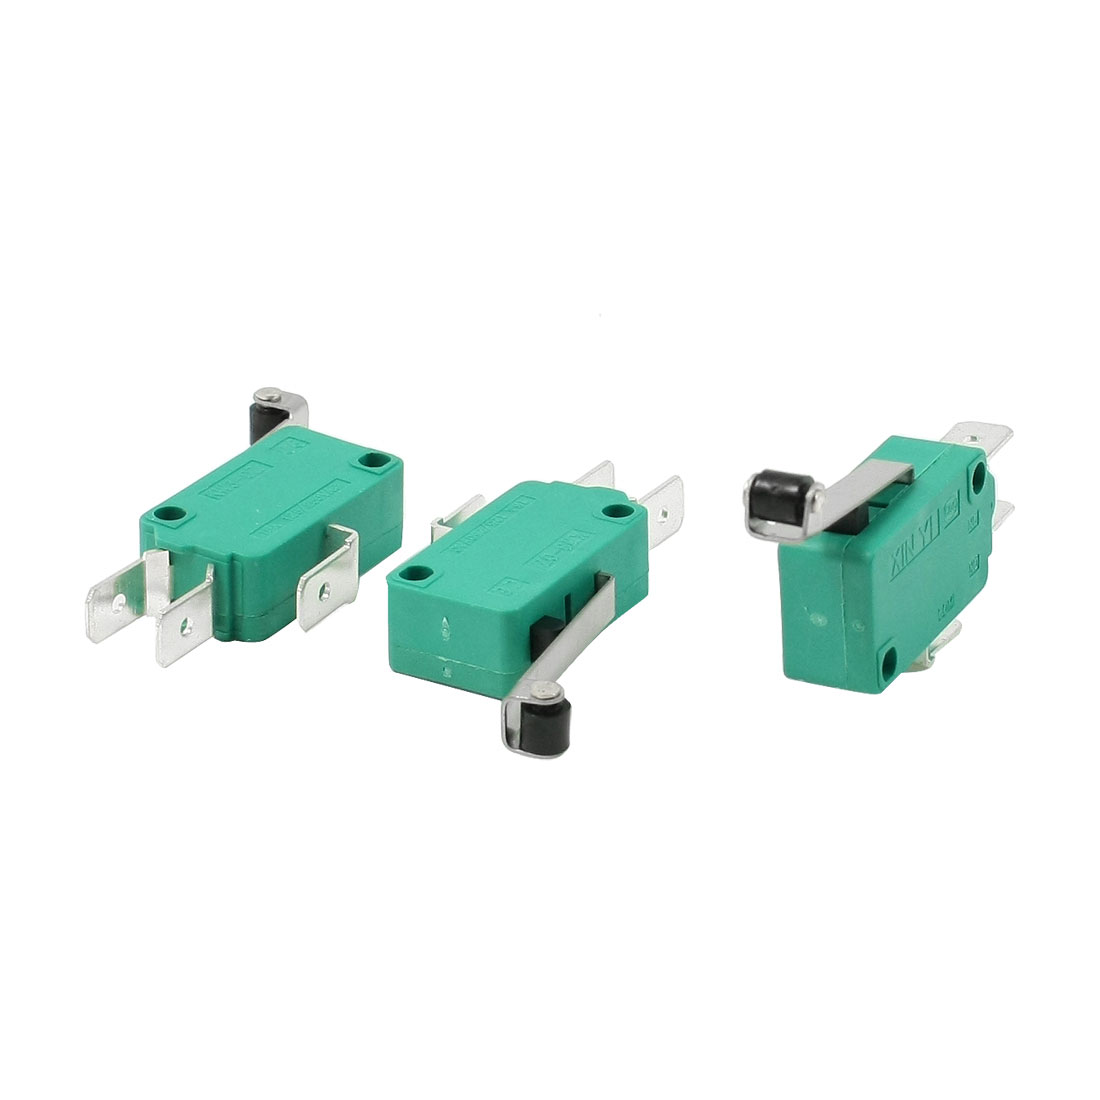 3-Pcs-AC-250V-16A-SPDT-Long-Hinge-Roller-Lever-Momentary-Micro-Switch-Green